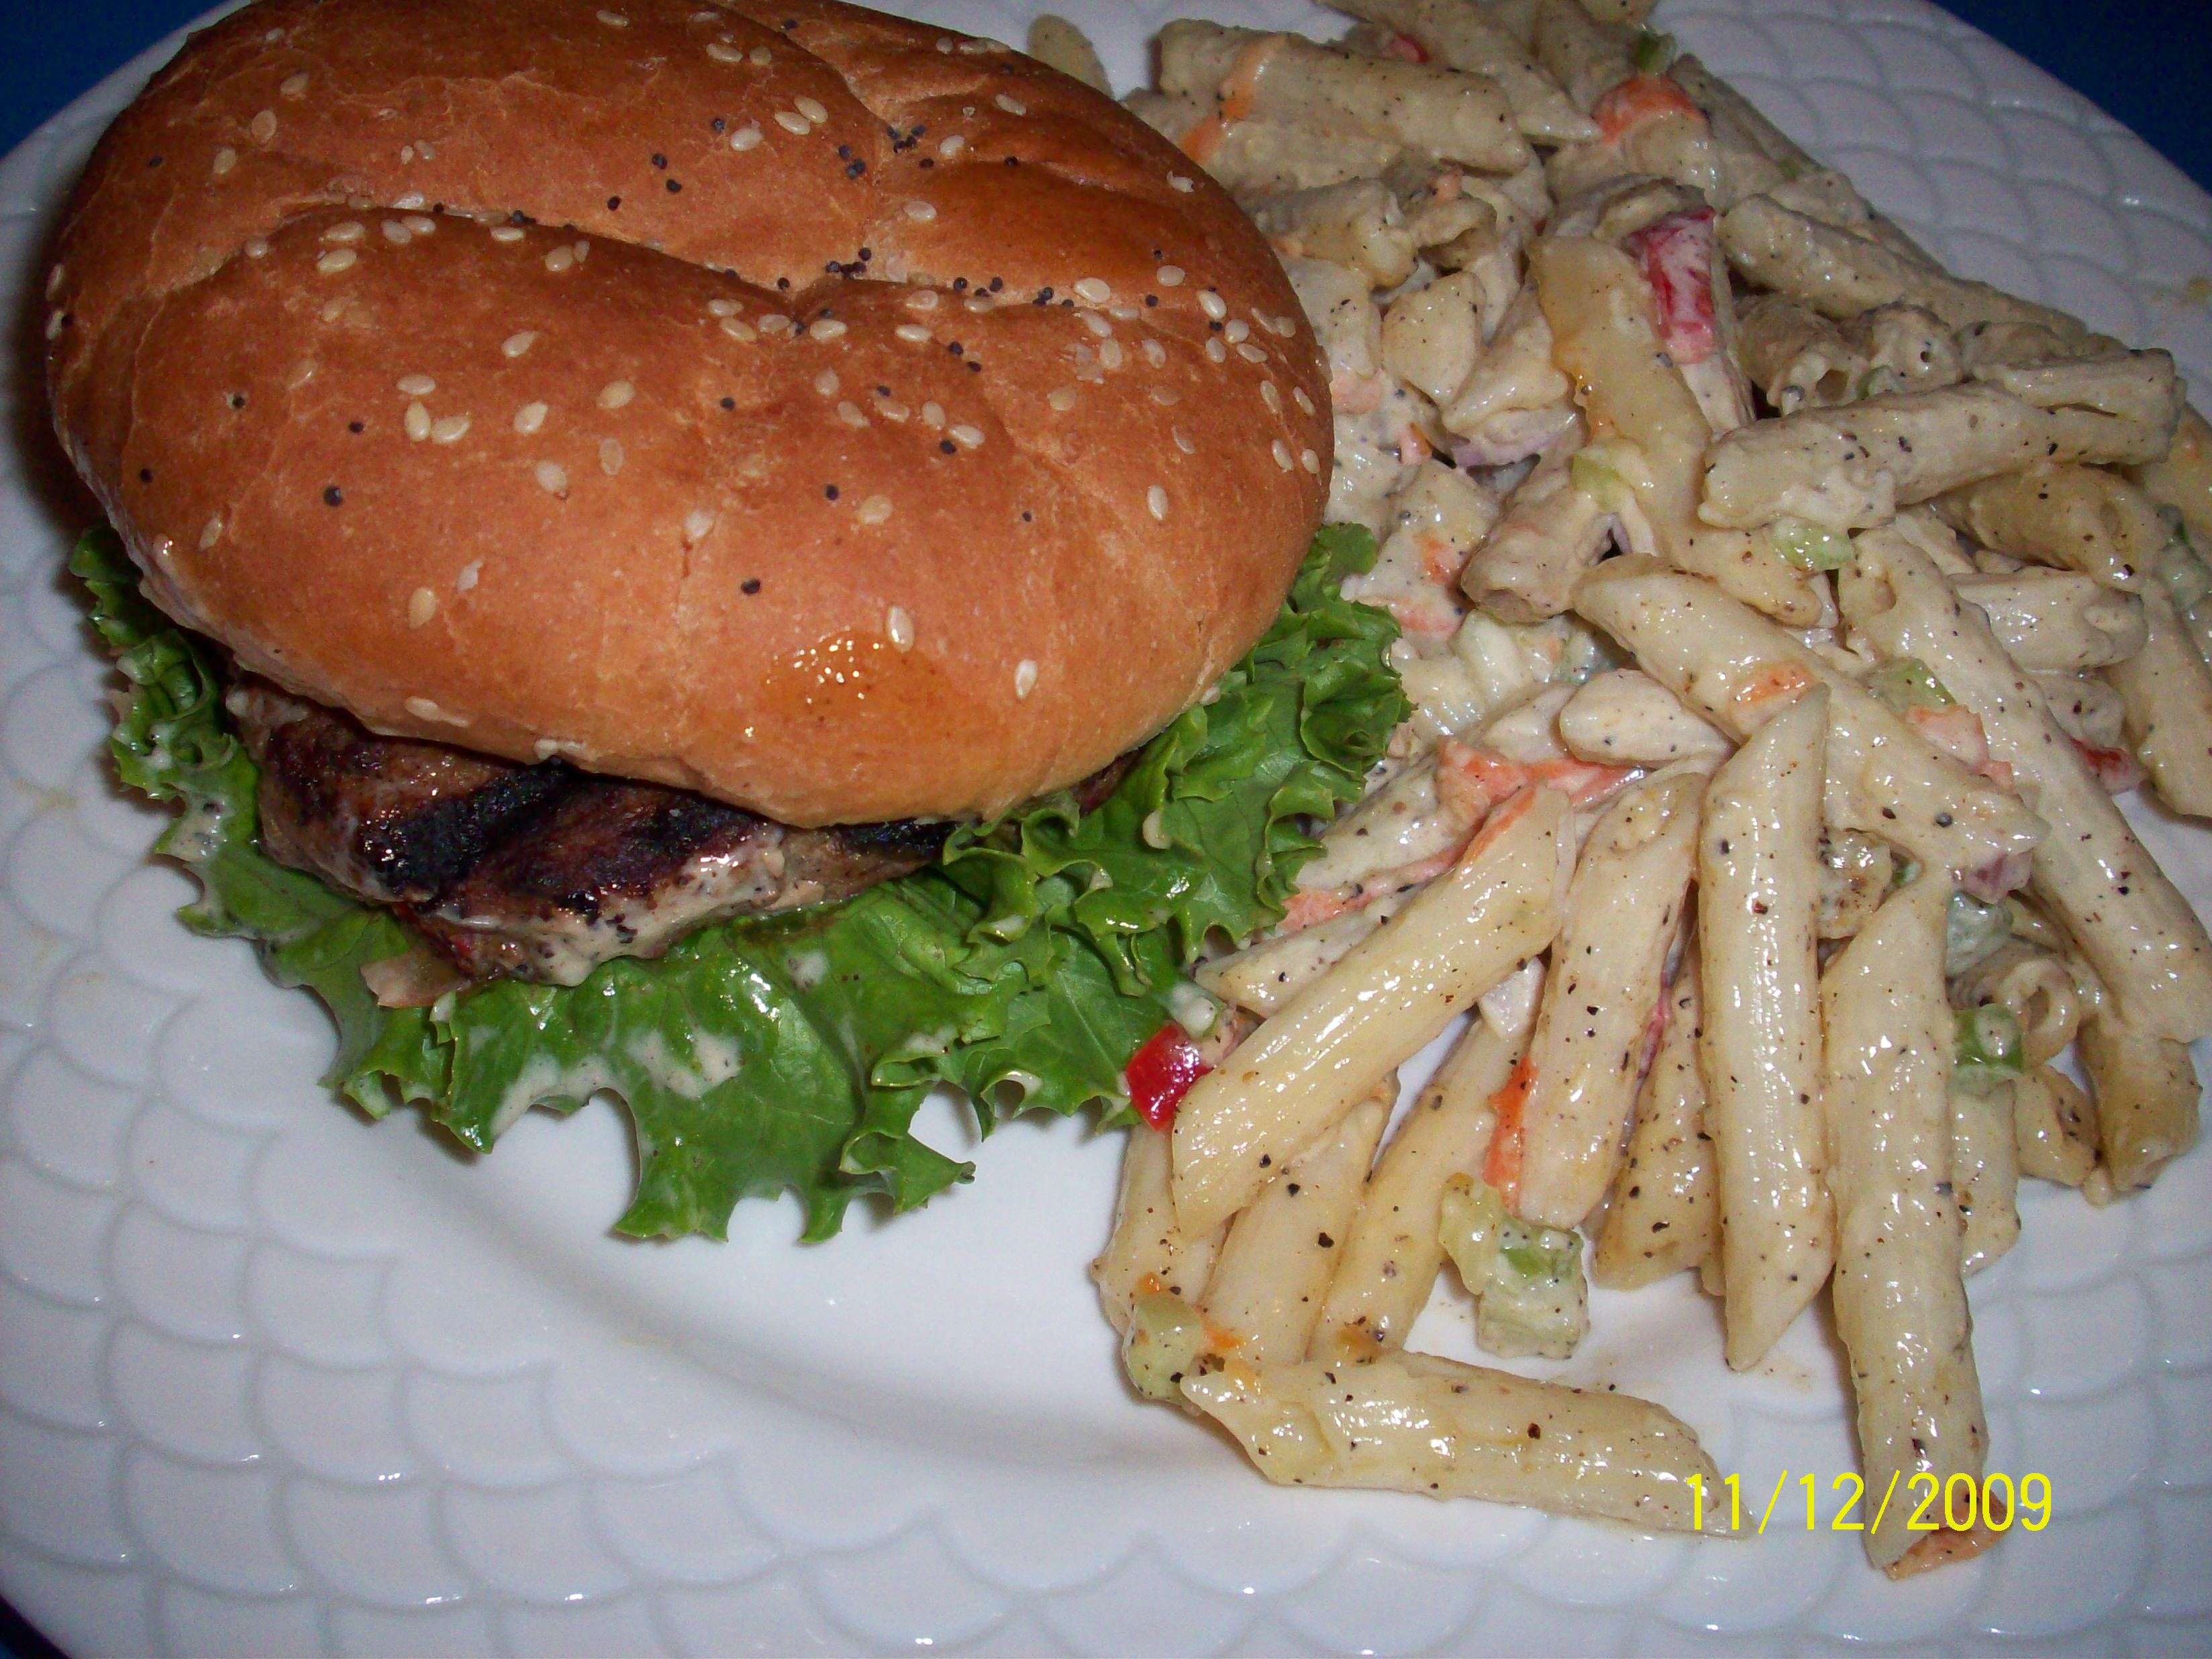 http://foodloader.net/cutie_2009-12-11_Turkey_Sandwich_with_Macaroni.jpg